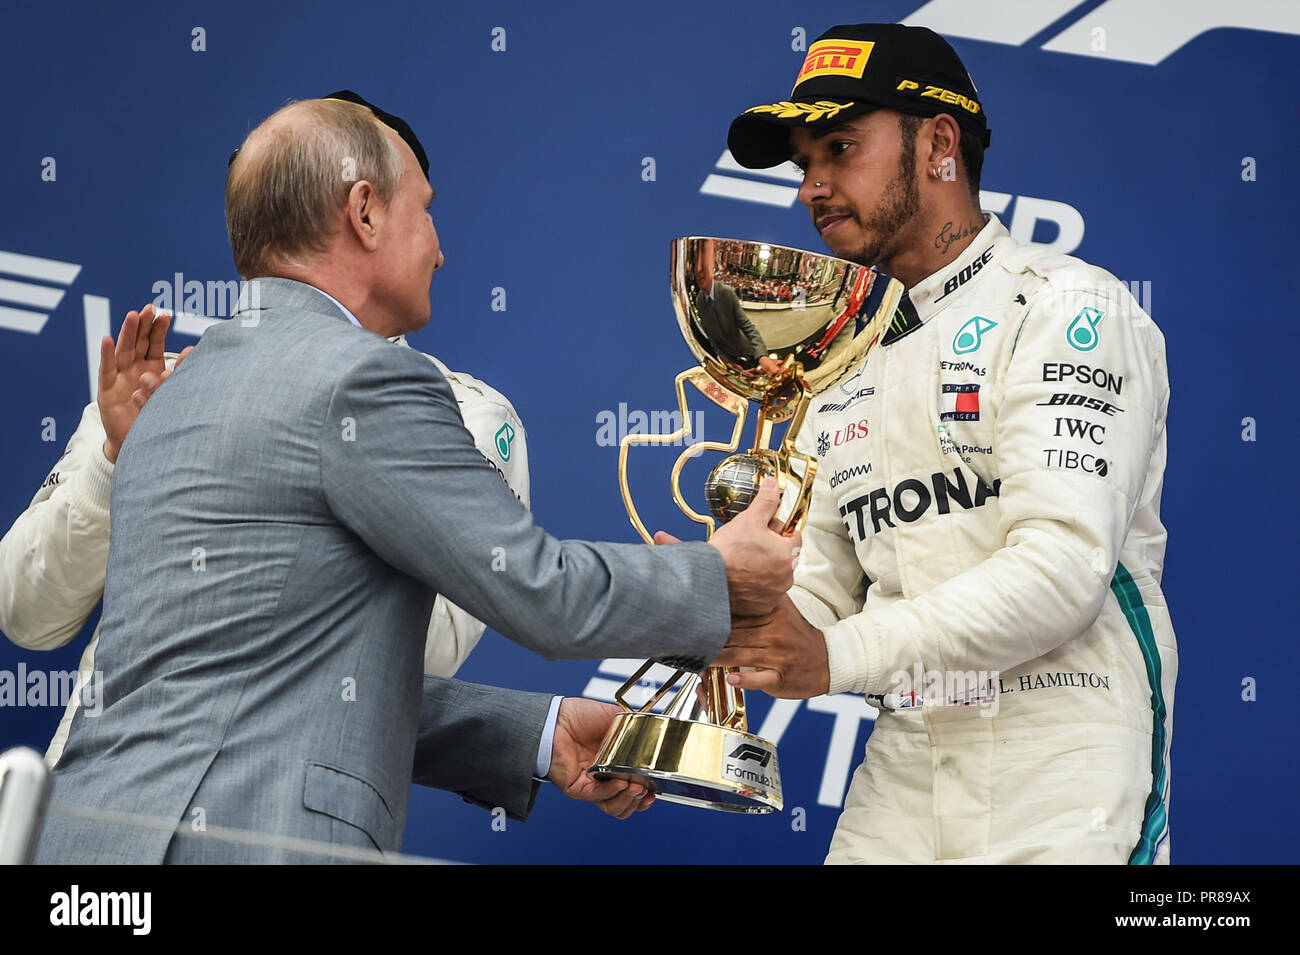 Sochi. 30th Sep, 2018. The president of Russia Vladimir Putin (L) awards Lewis Hamilton of Mercedes after the Formula One Russian Grand Prix at the Sochi Autodrom circuit in Sochi on September 30, 2018. Credit: Evgeny Sinitsyn/Xinhua/Alamy Live News - Stock Image